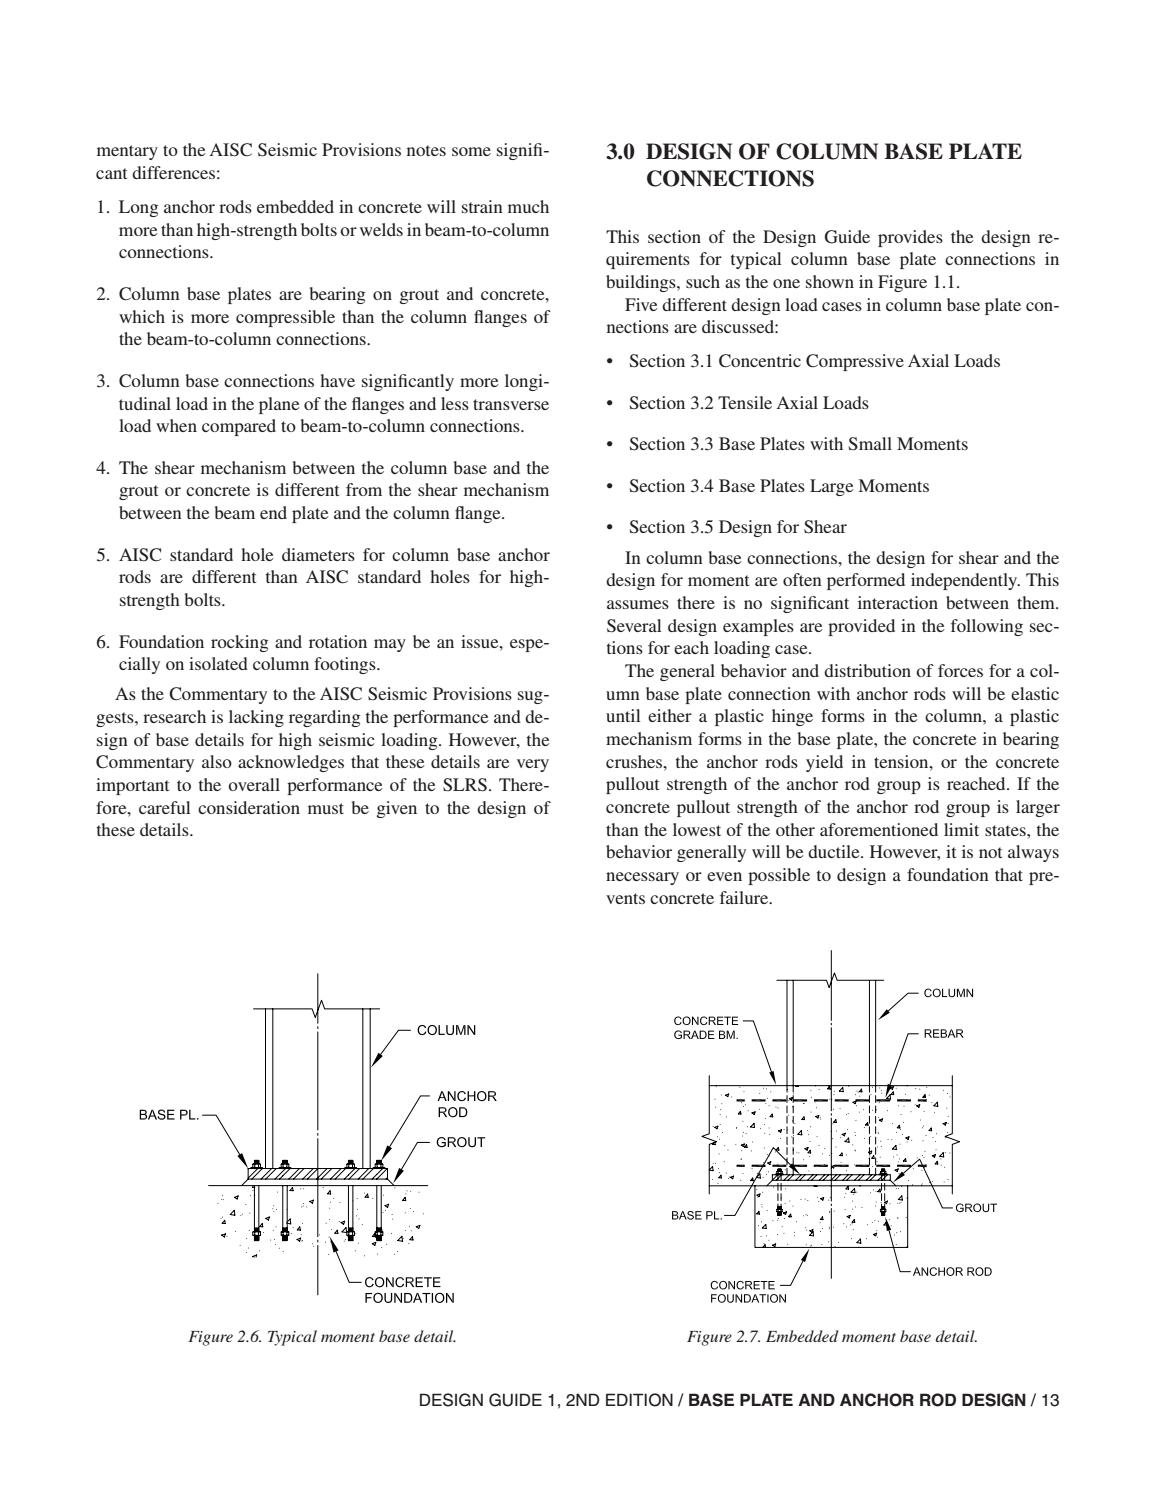 Aisc Design Guide 01 Base Plate And Anchor Rod Design 2nd